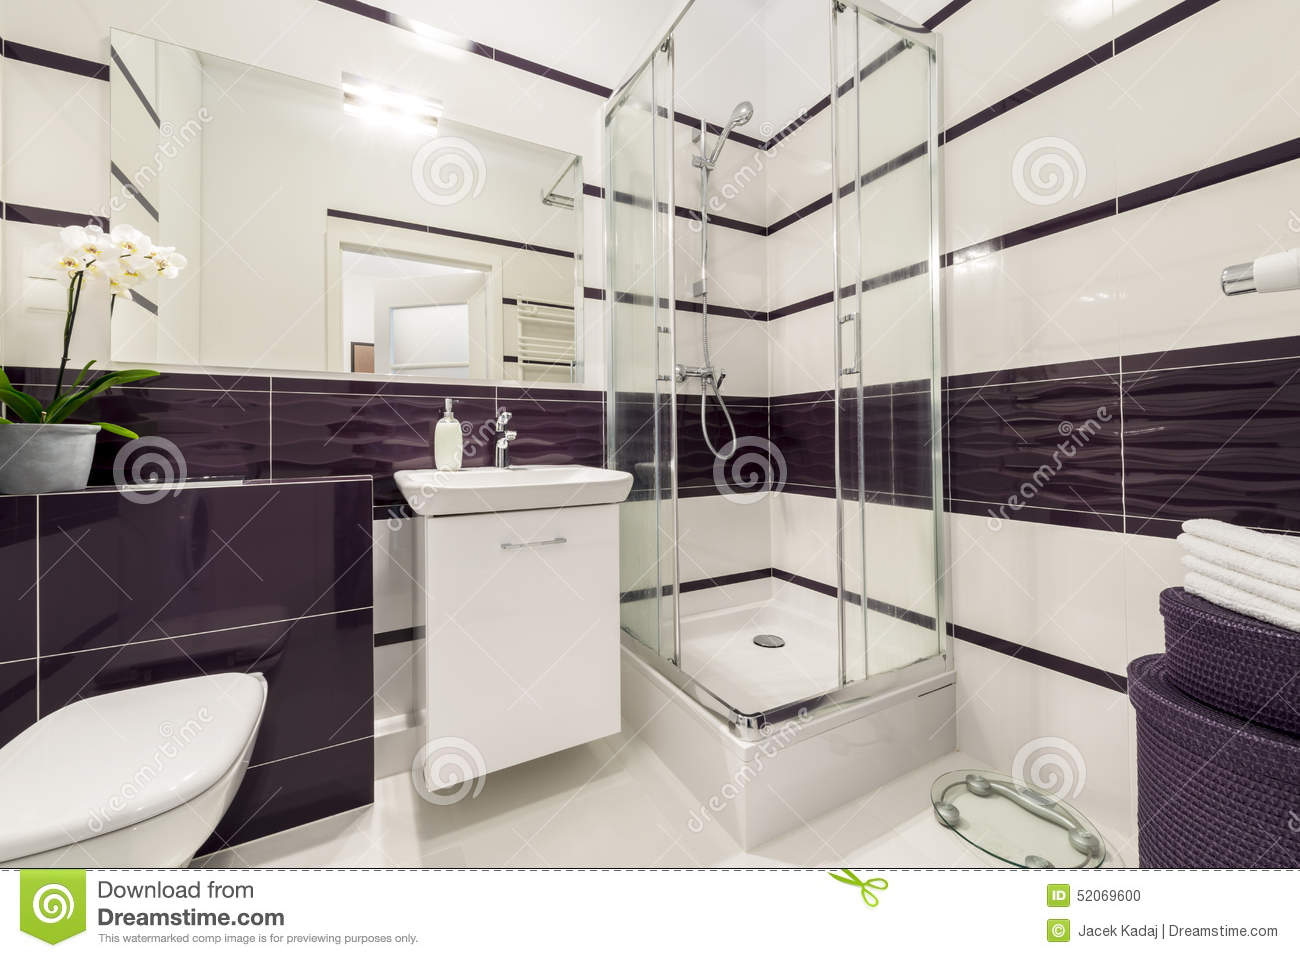 salle de bain moderne avec baignoire. Black Bedroom Furniture Sets. Home Design Ideas